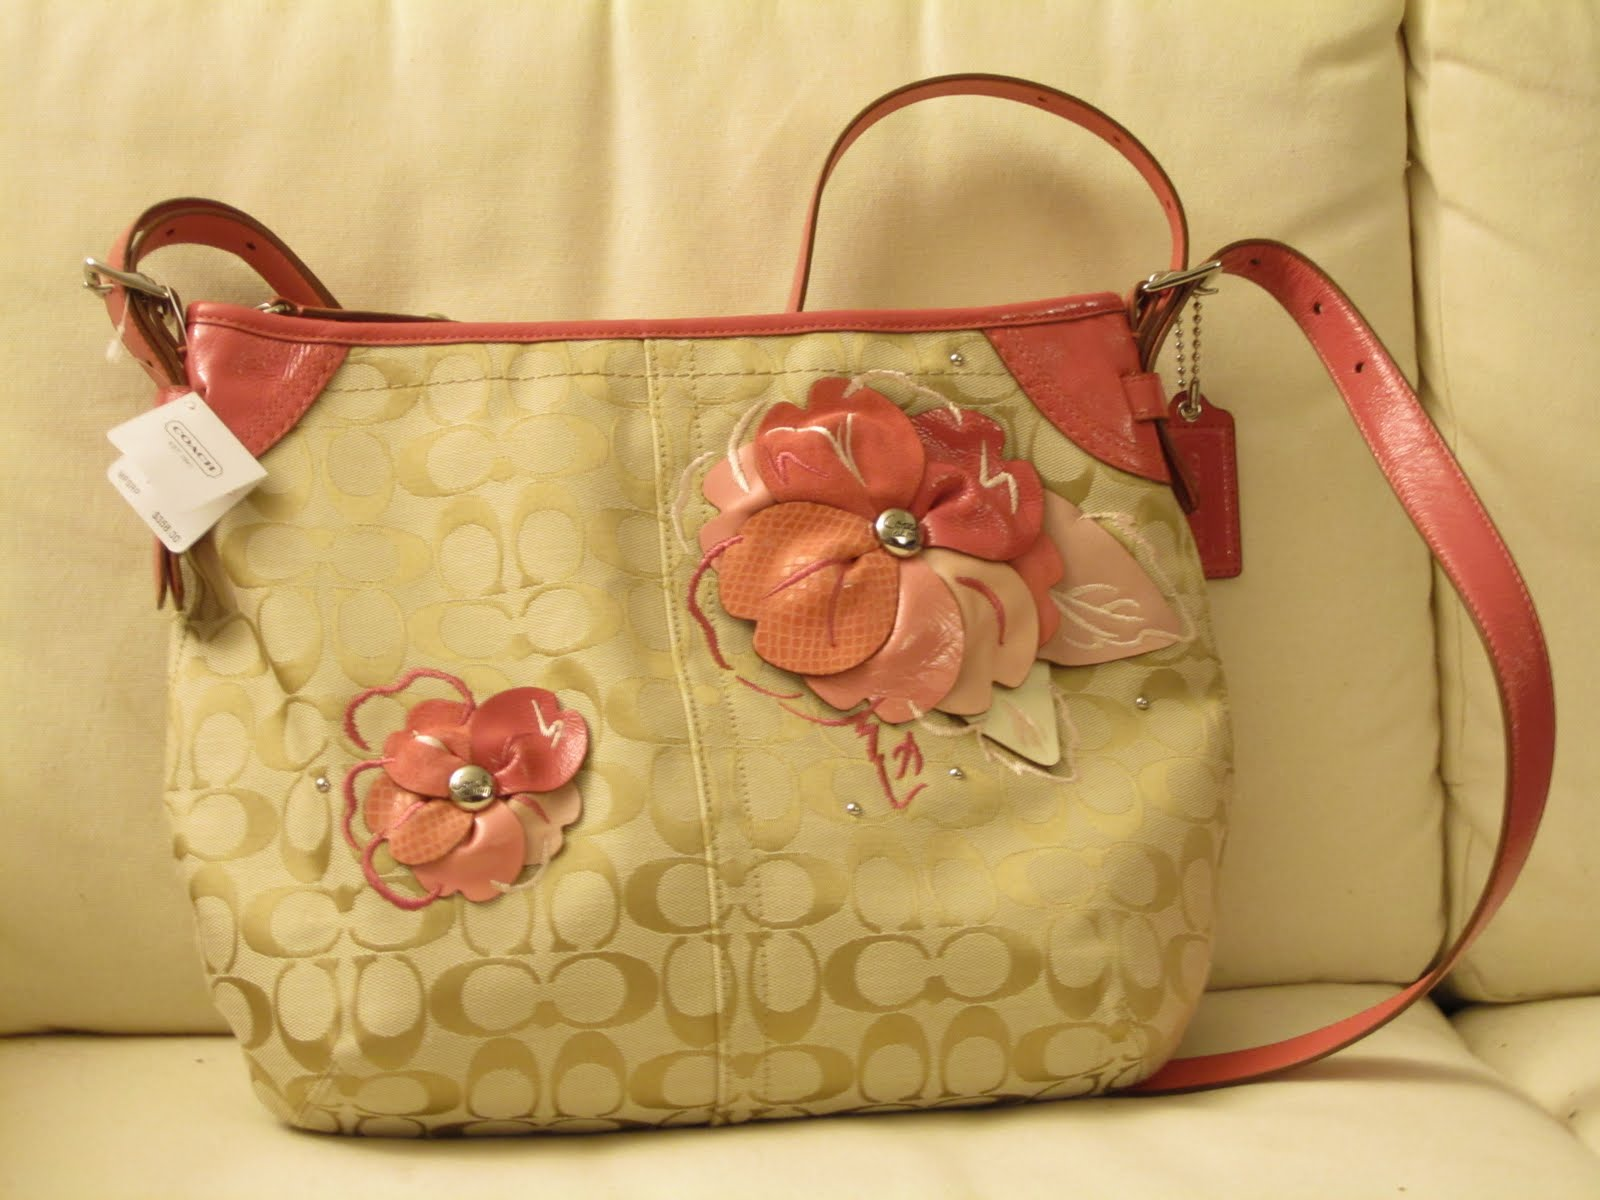 I Buy You Buy I Saved You Saved Coach Signature Floral Applique